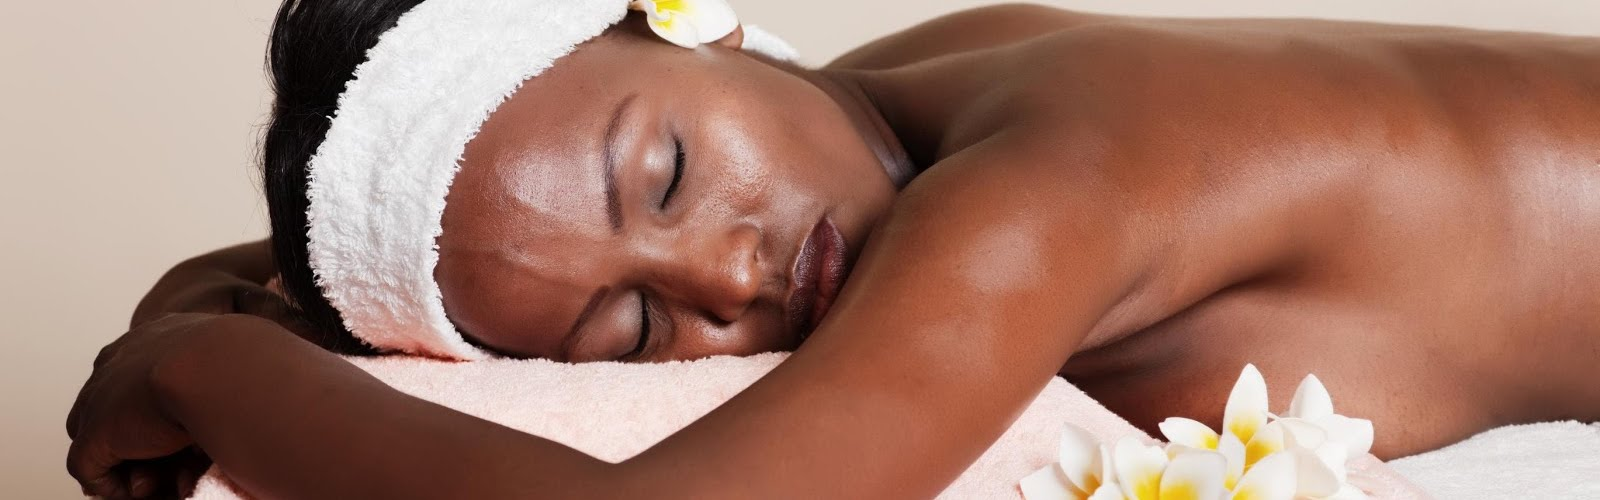 a woman of colour lying peacefully after having received a massage